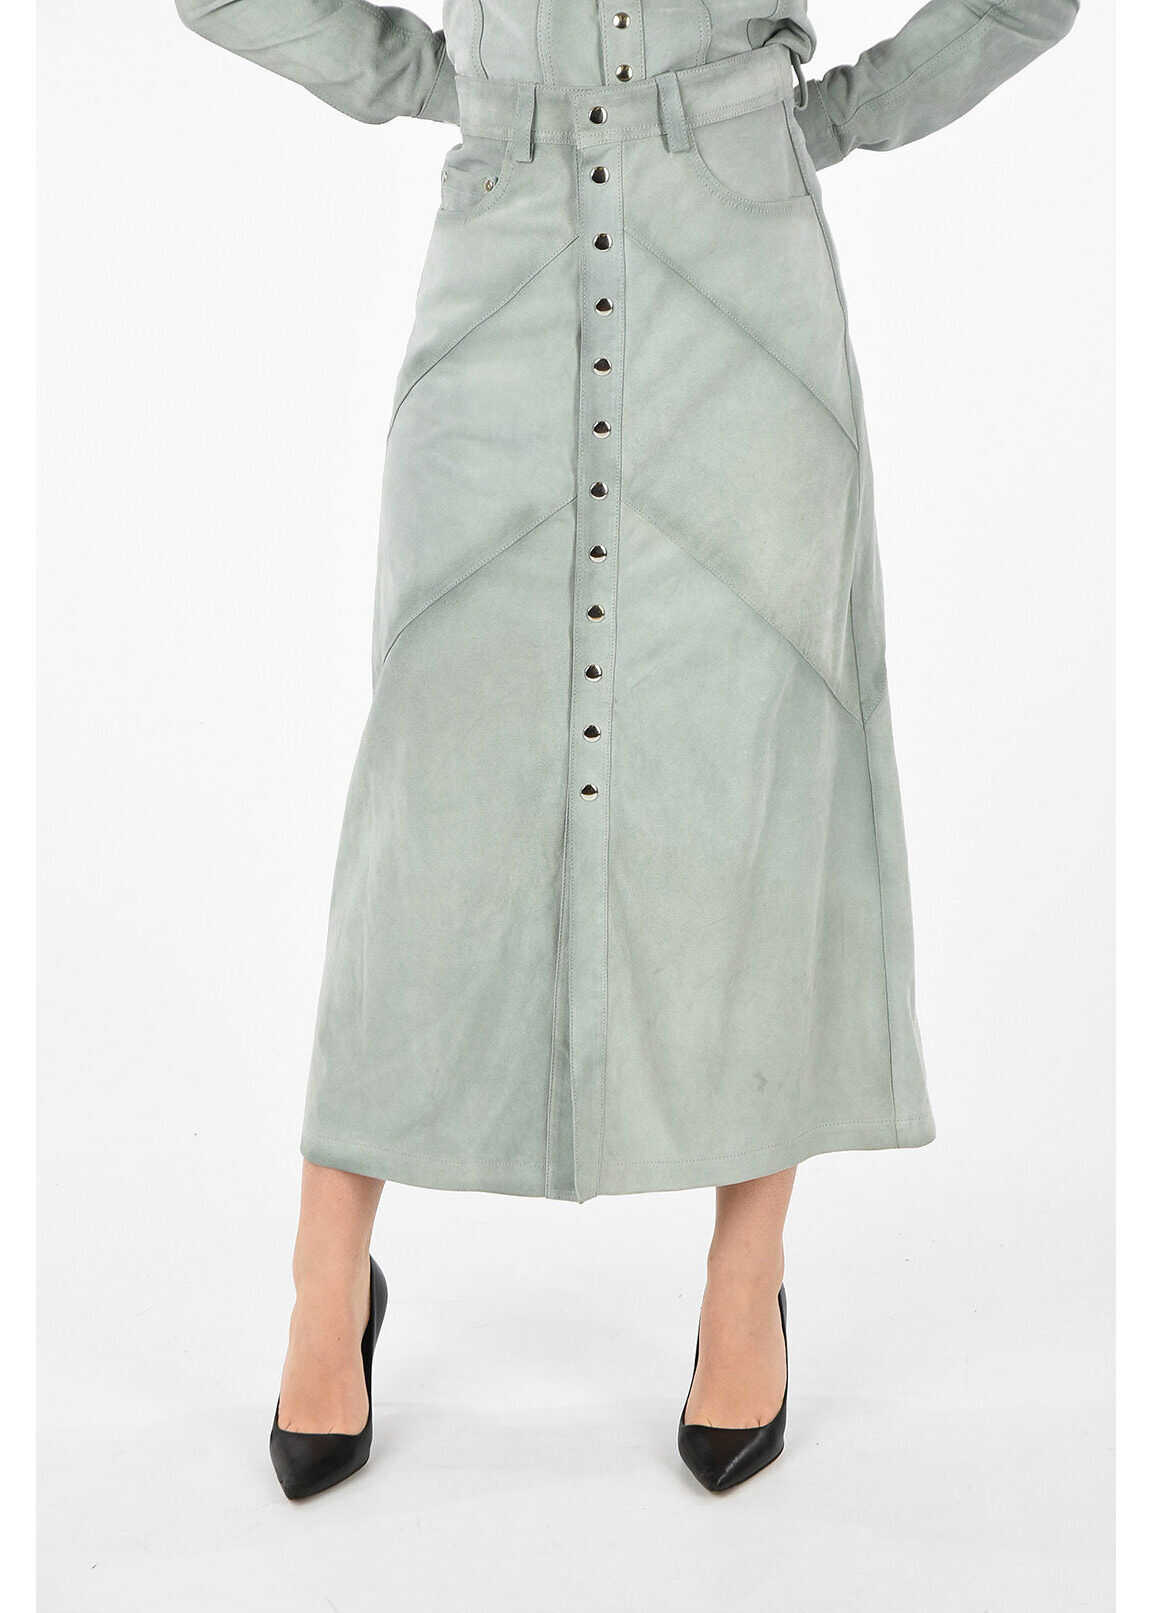 BLACK GOLD Suede Leather OLOPRESS Skirt thumbnail